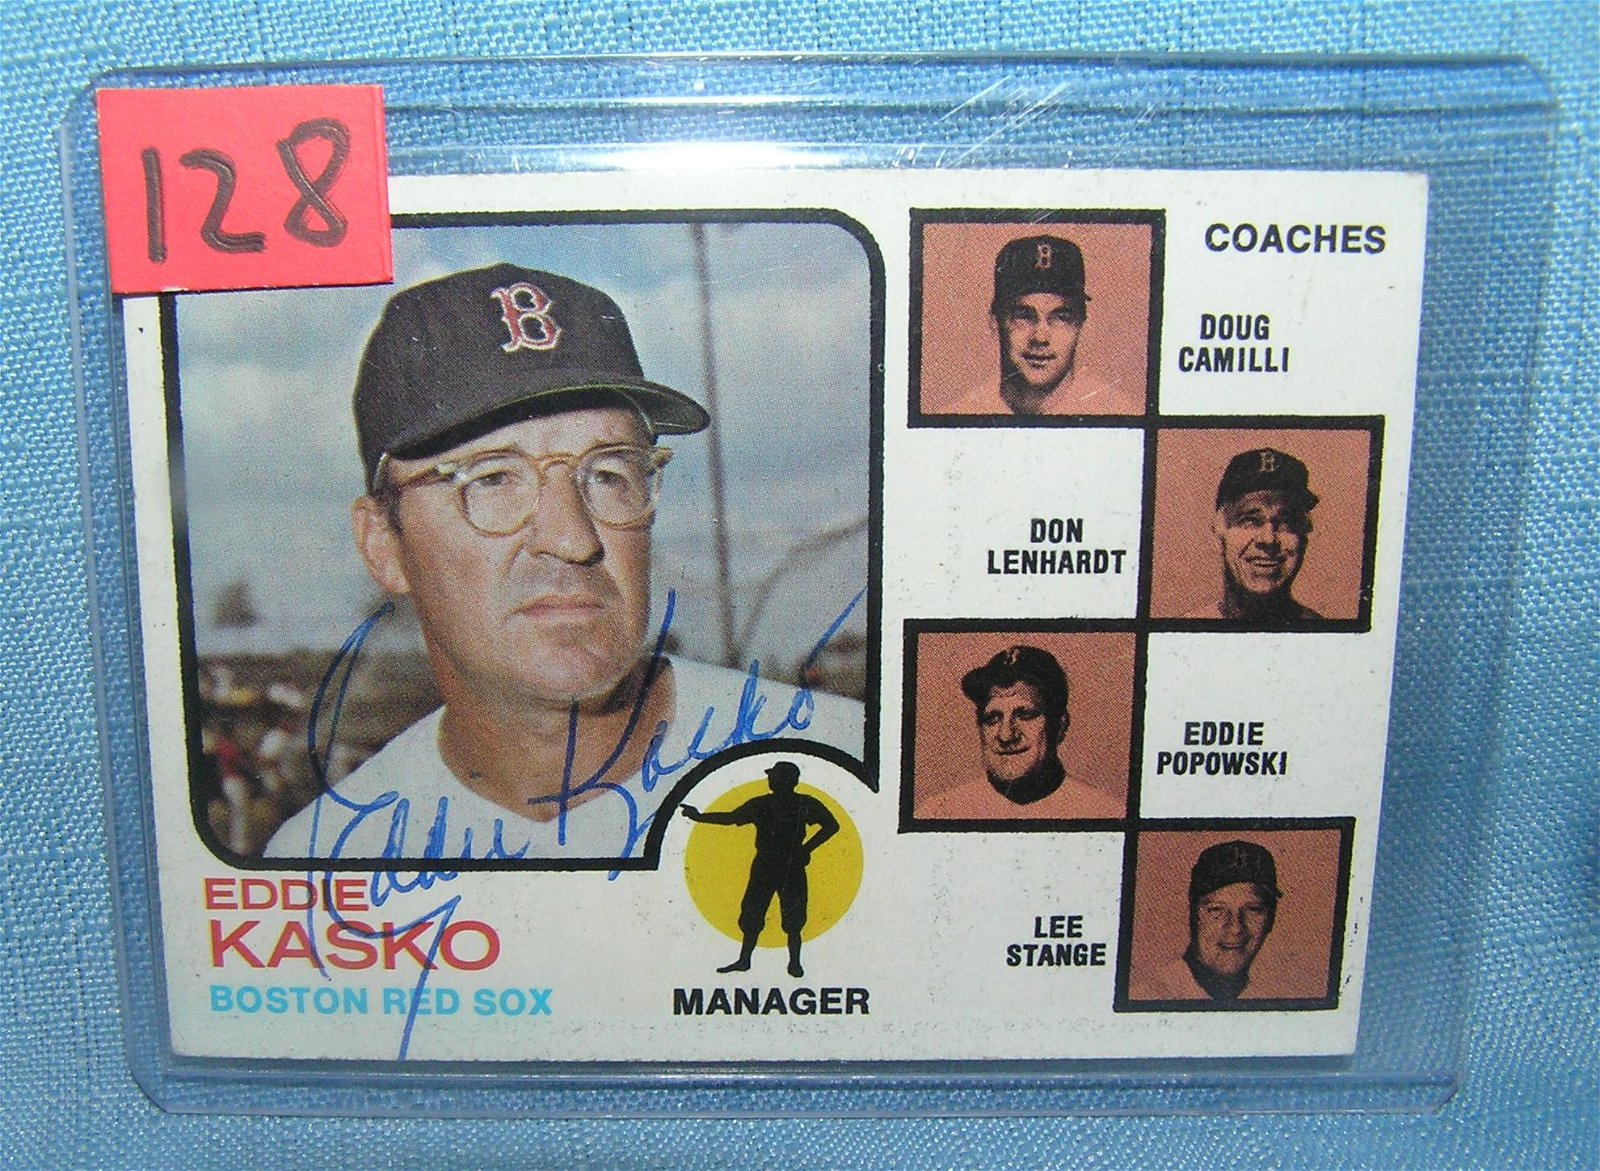 Eddie Kasko autographed Red Sox baseball card